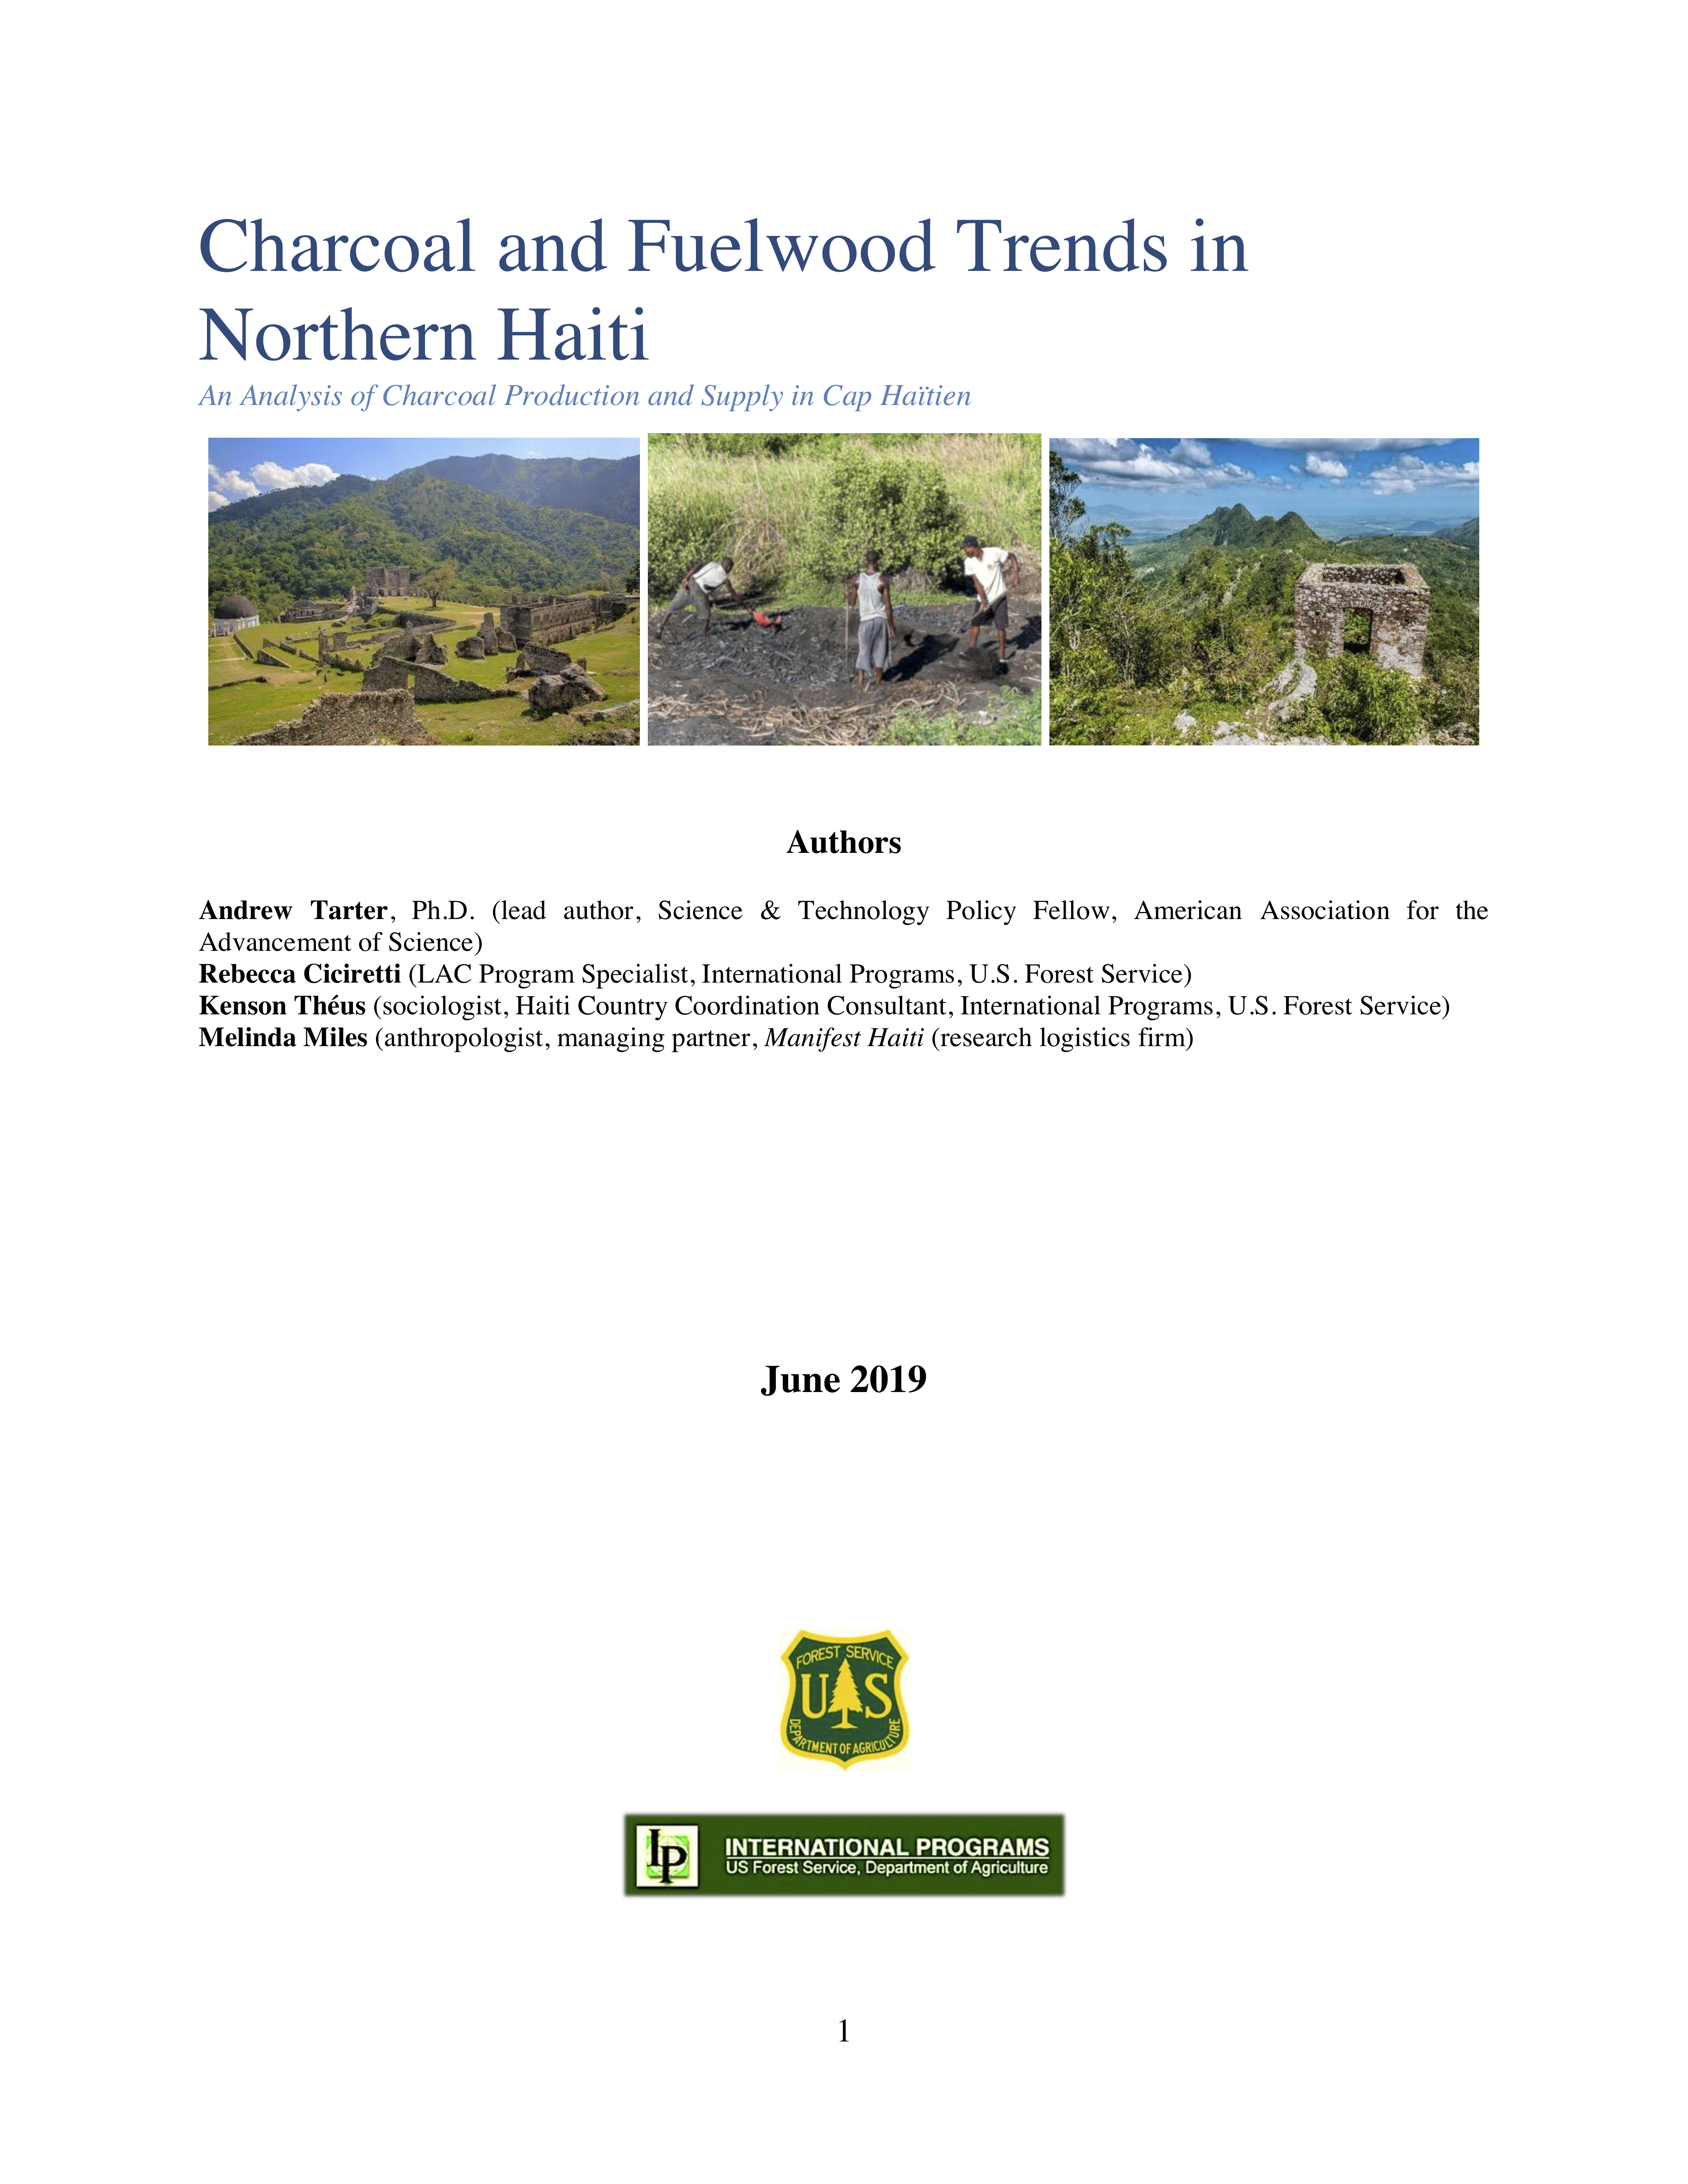 Andrew Tarter - Charcoal and Fuelwood Trends in Northern Haiti